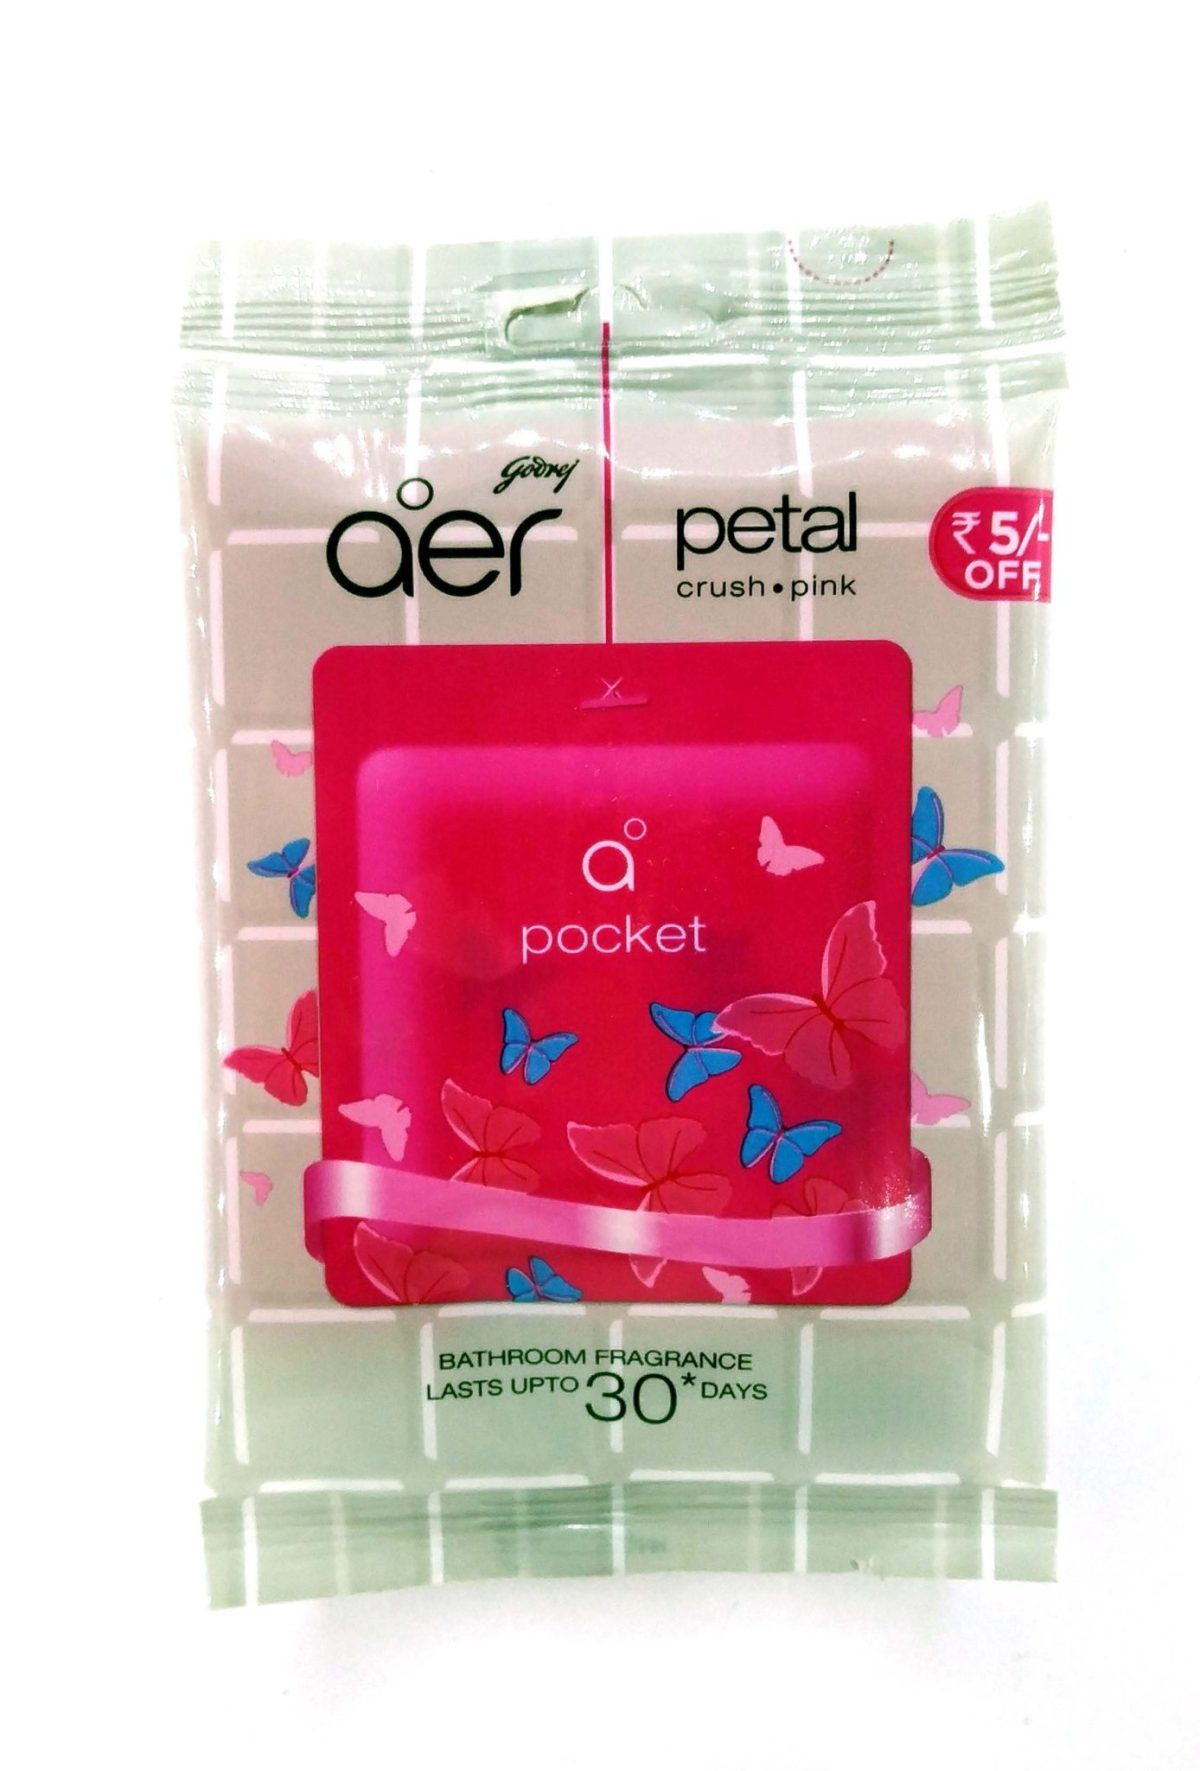 Godrej Aer Bathroom Fragrance Petal Crush Pink Pocket Sachet ,10g